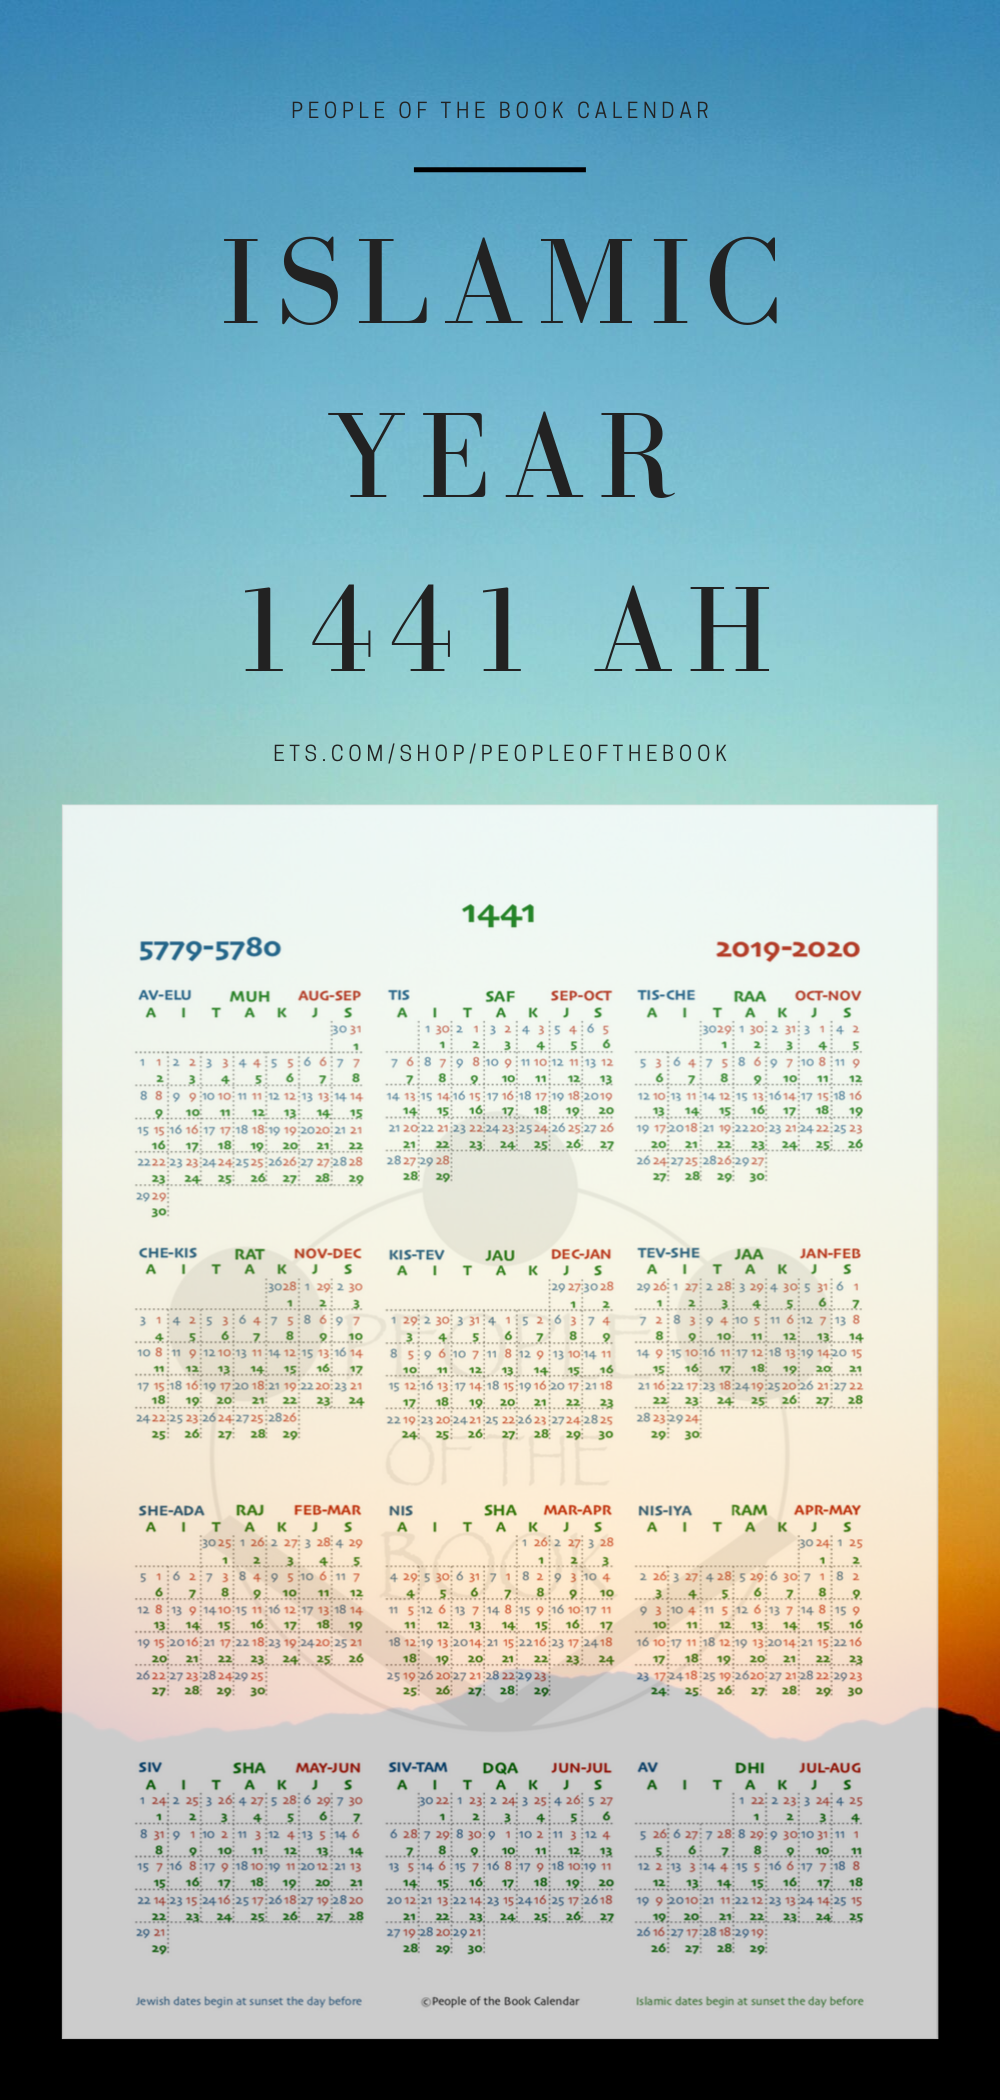 1441 Ah Islamic Year Overview